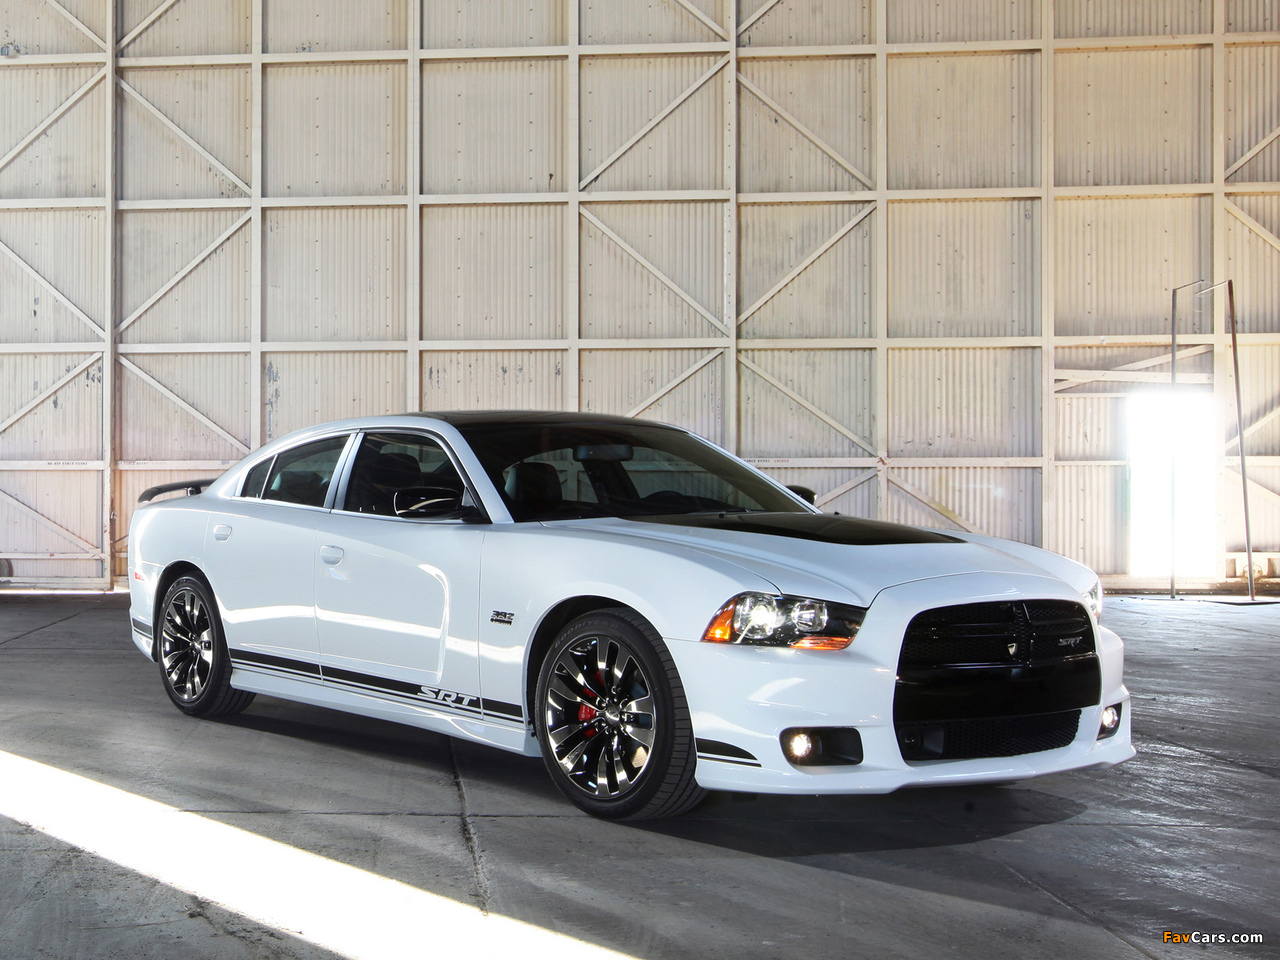 Dodge Charger SRT8 392 Appearance Package 2013 photos (1280 x 960)